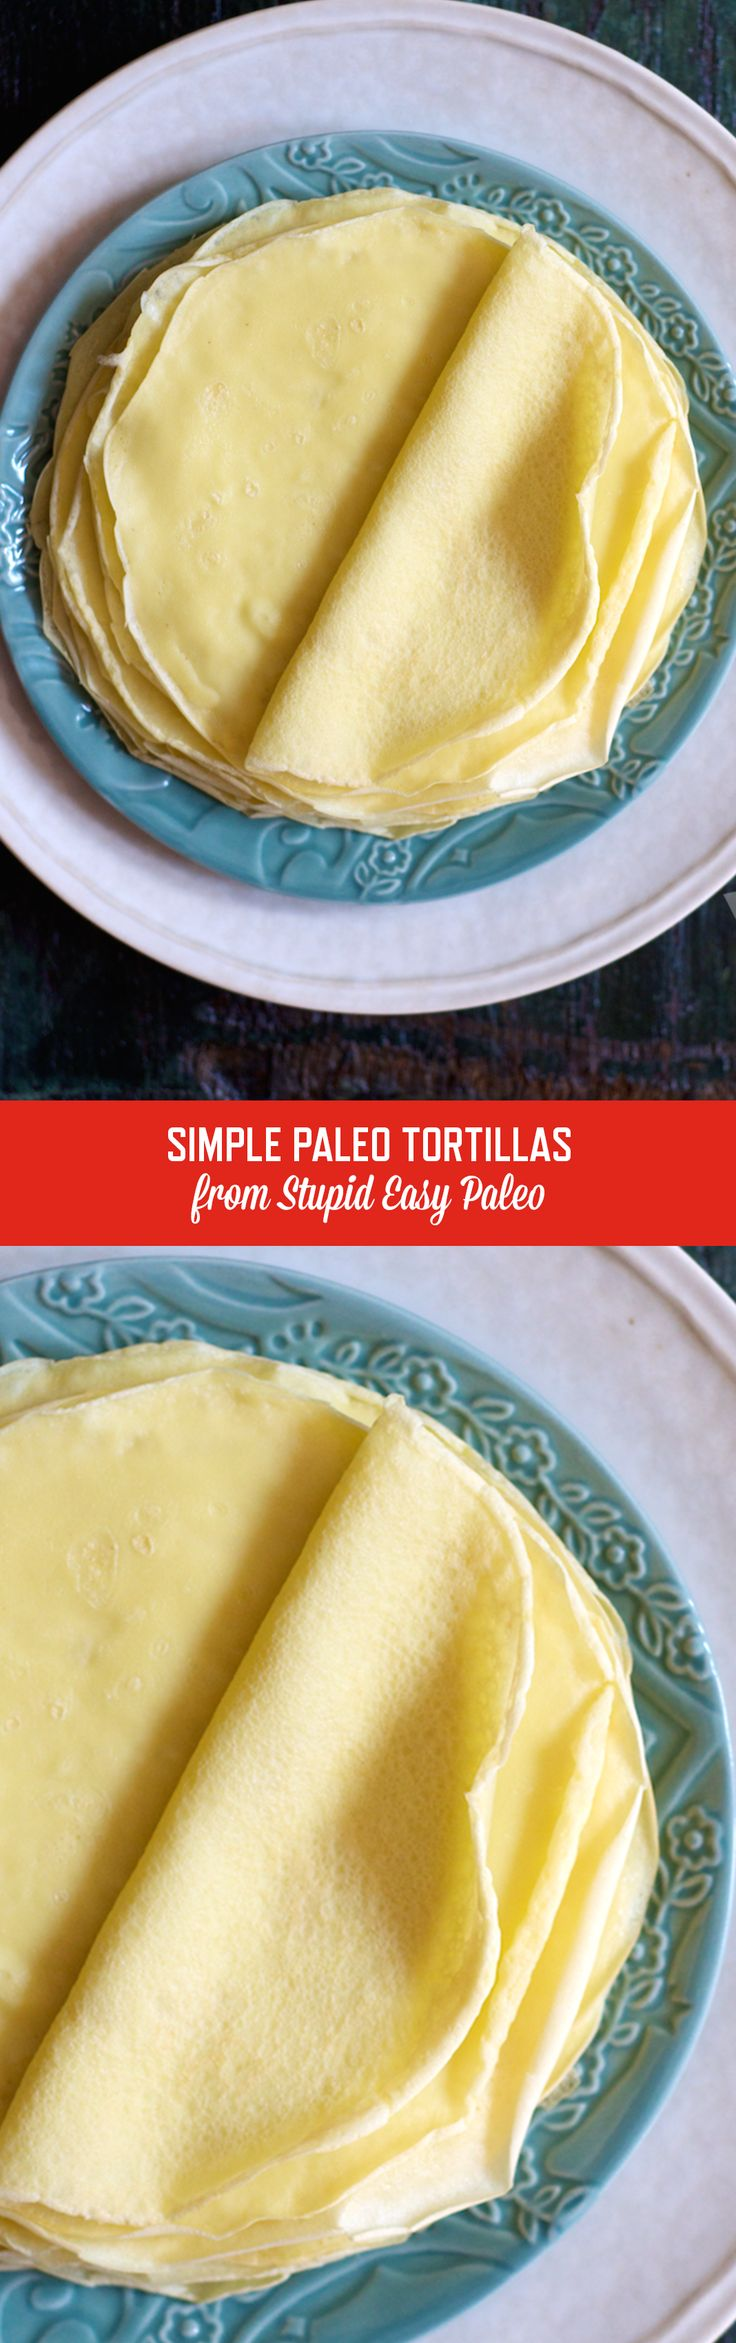 Simple Paleo Tortillas Recipe | StupidEasyPaleo.com...a little edgier, would be great for breakfast.